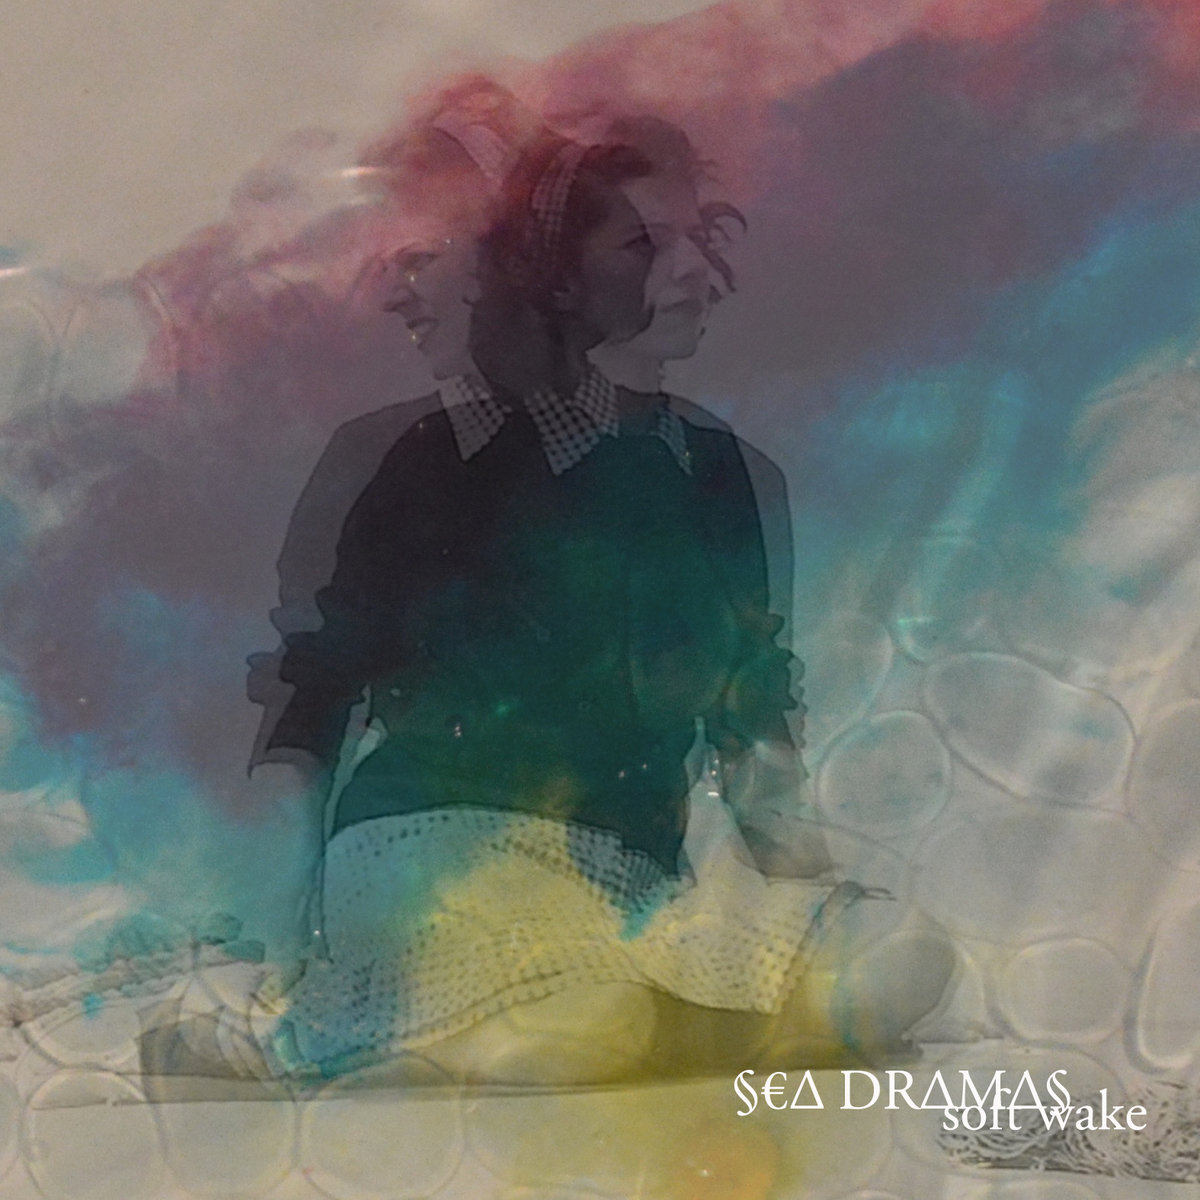 Sea Dramas 'Soft Wake' (San Francisco, 2013)